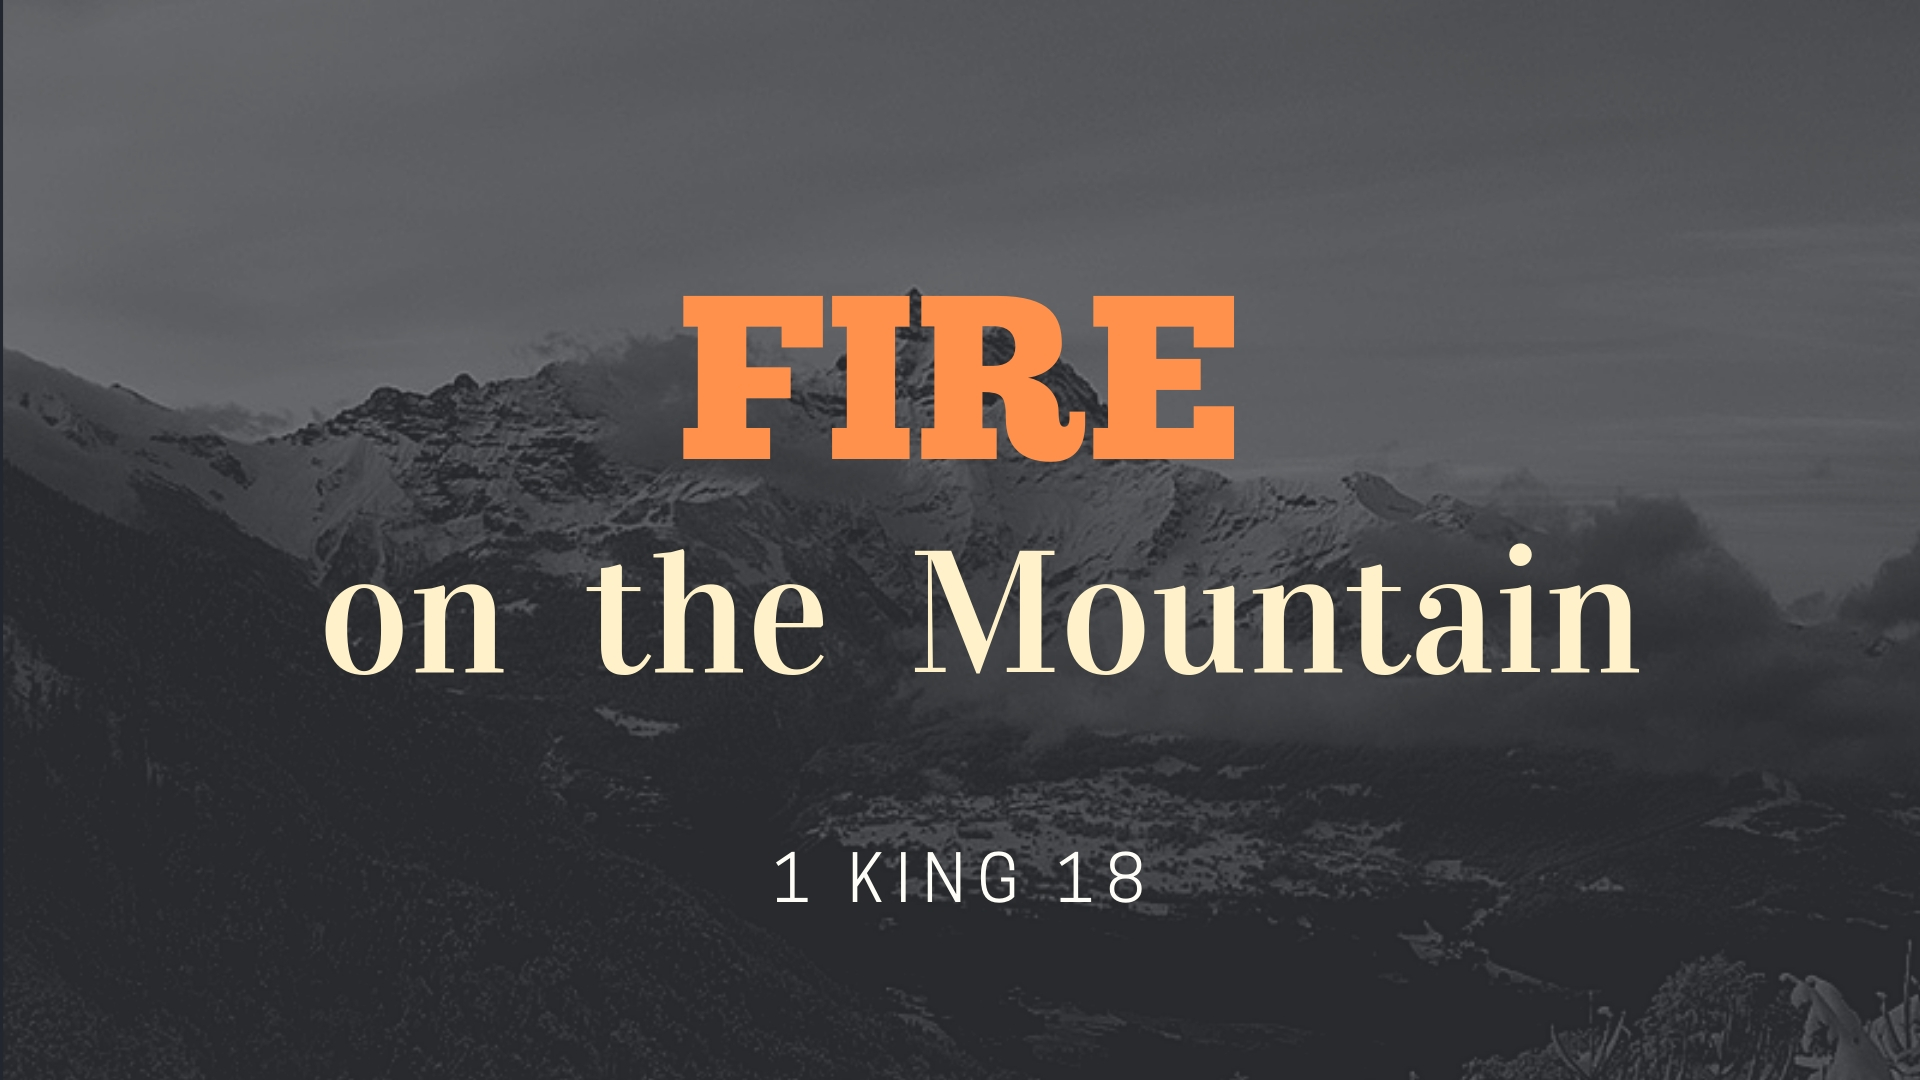 20190707 FIRE ON THE MOUNTAIN.jpeg